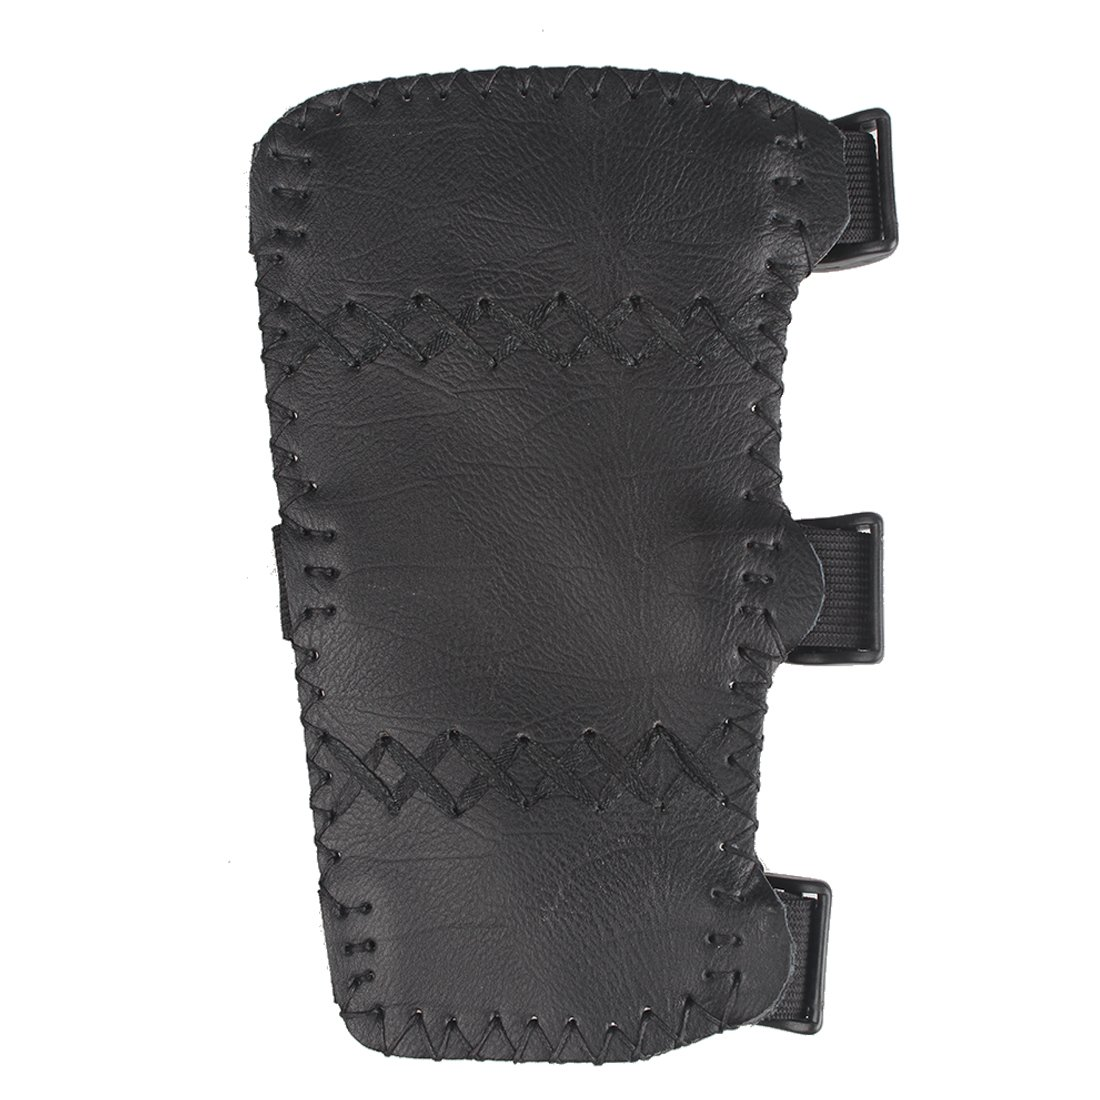 Krayney Adult Youth Leather 3-Strap Arm Guard Hunting Shooting Arrow Bow Gear Accessories, Archery Arm Finger Protector (Black, (Adult)) by Krayney